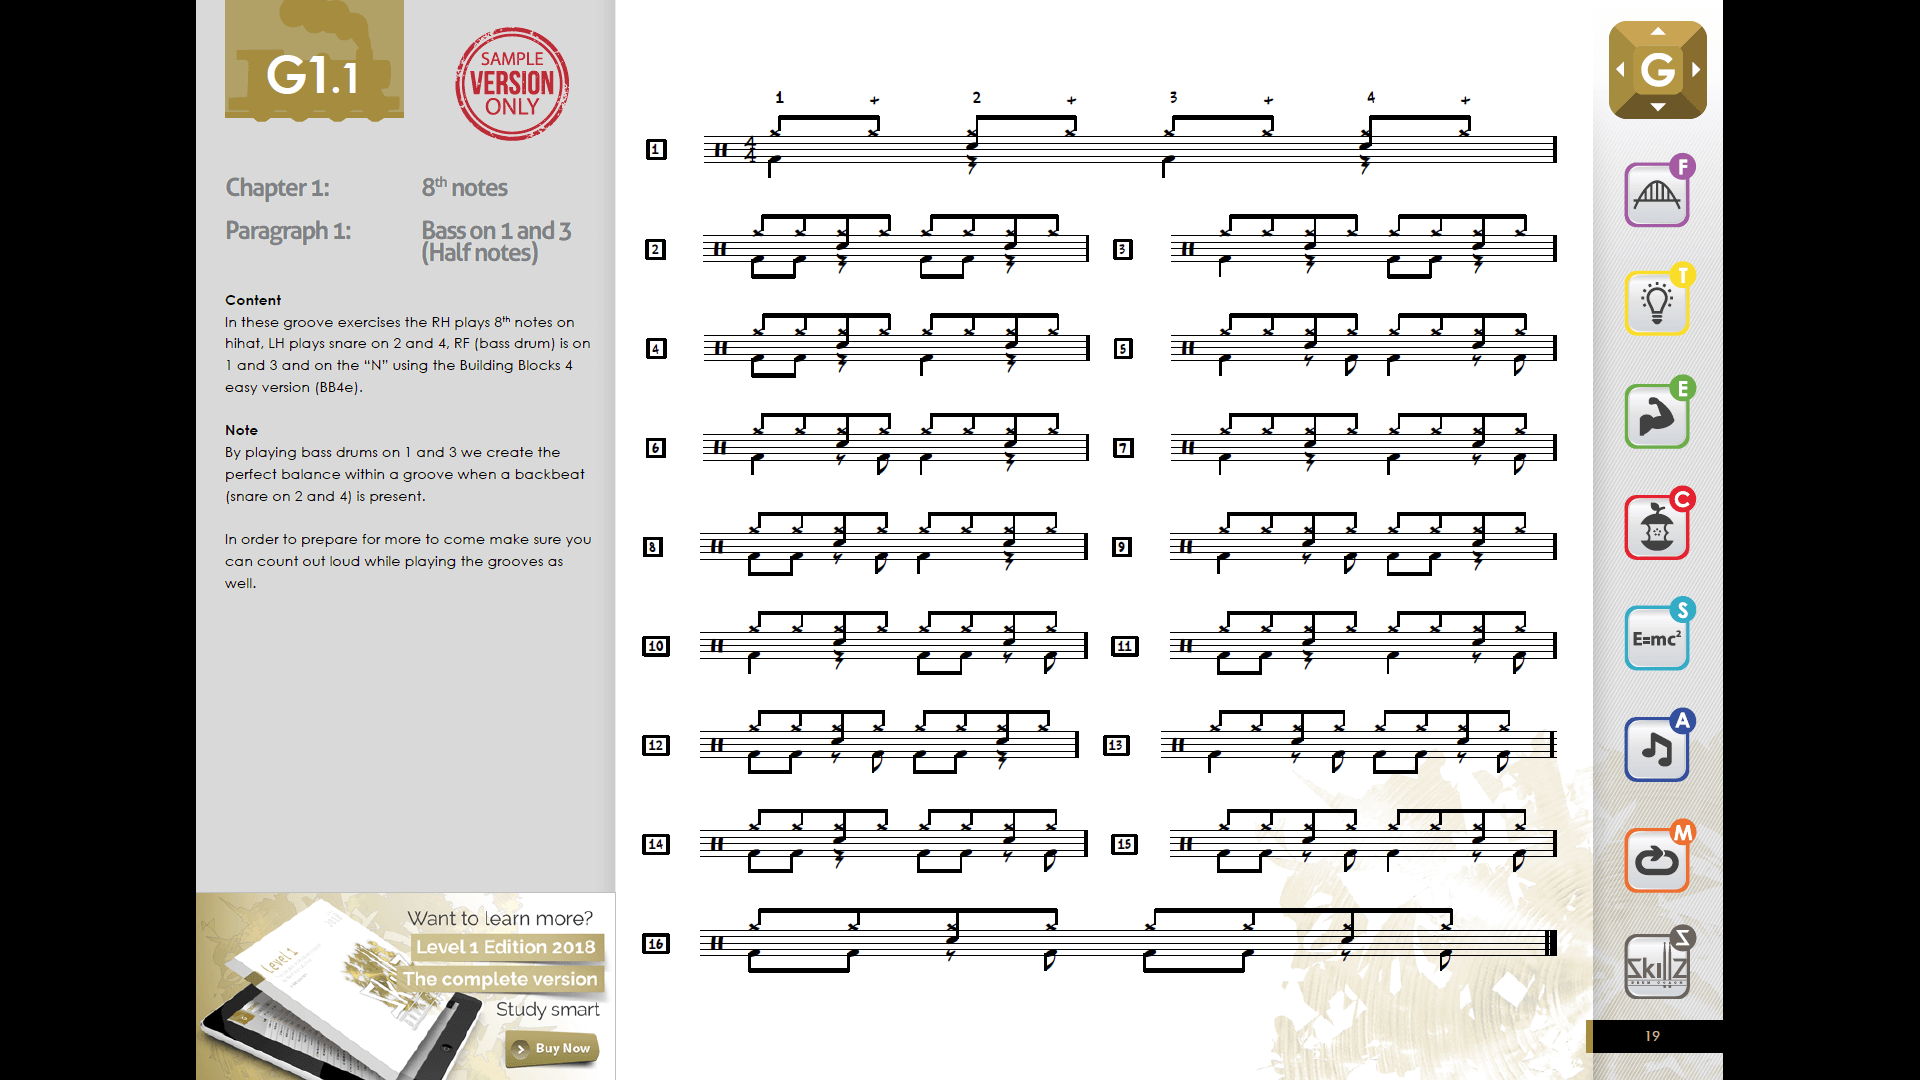 Screenshot page 8th notes Grooves G1.1 FREE beginner drum book Level 1 Trial Version Skillz Drum Lessons